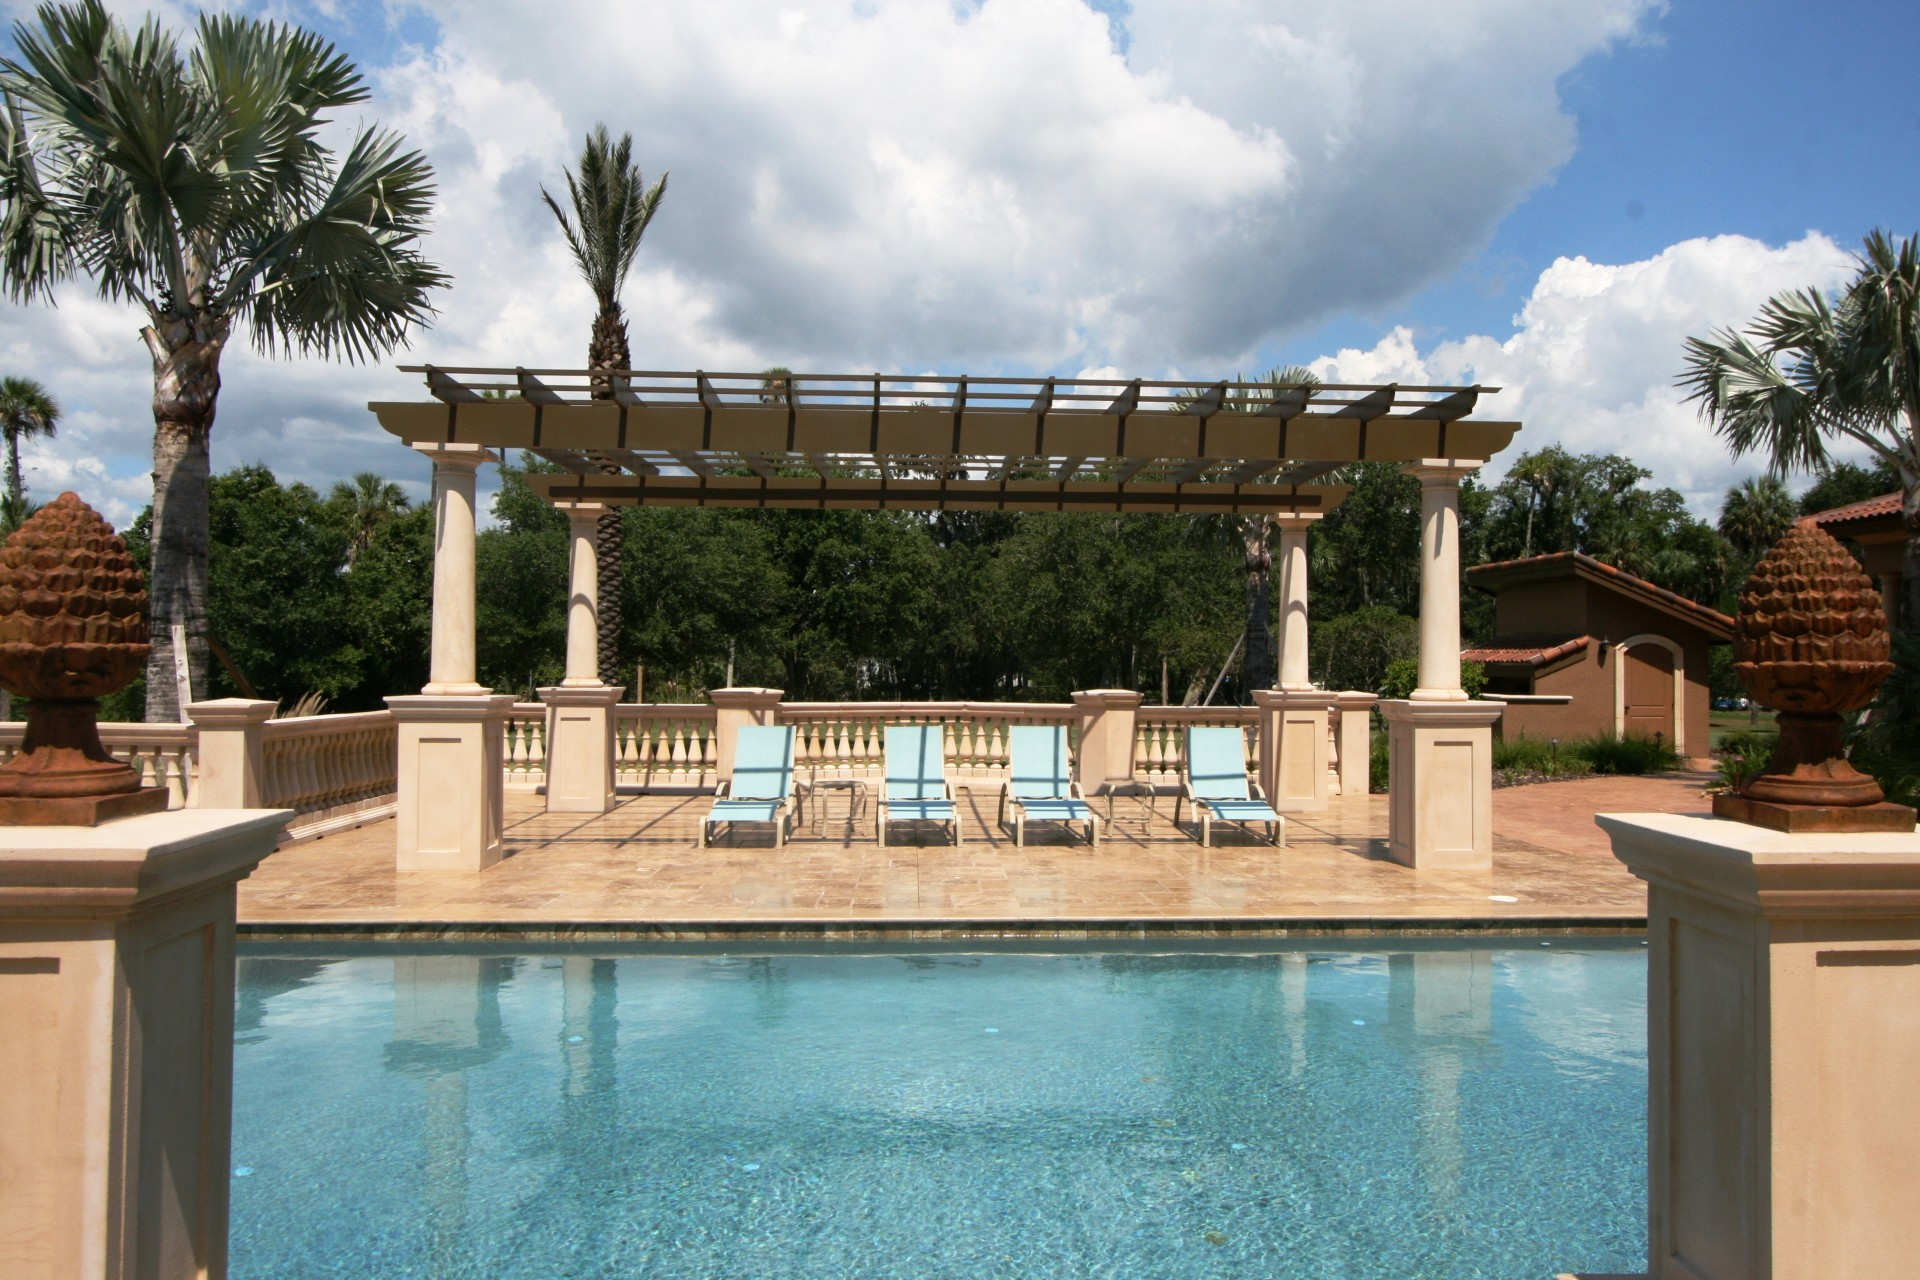 Damron Trellis and Pool